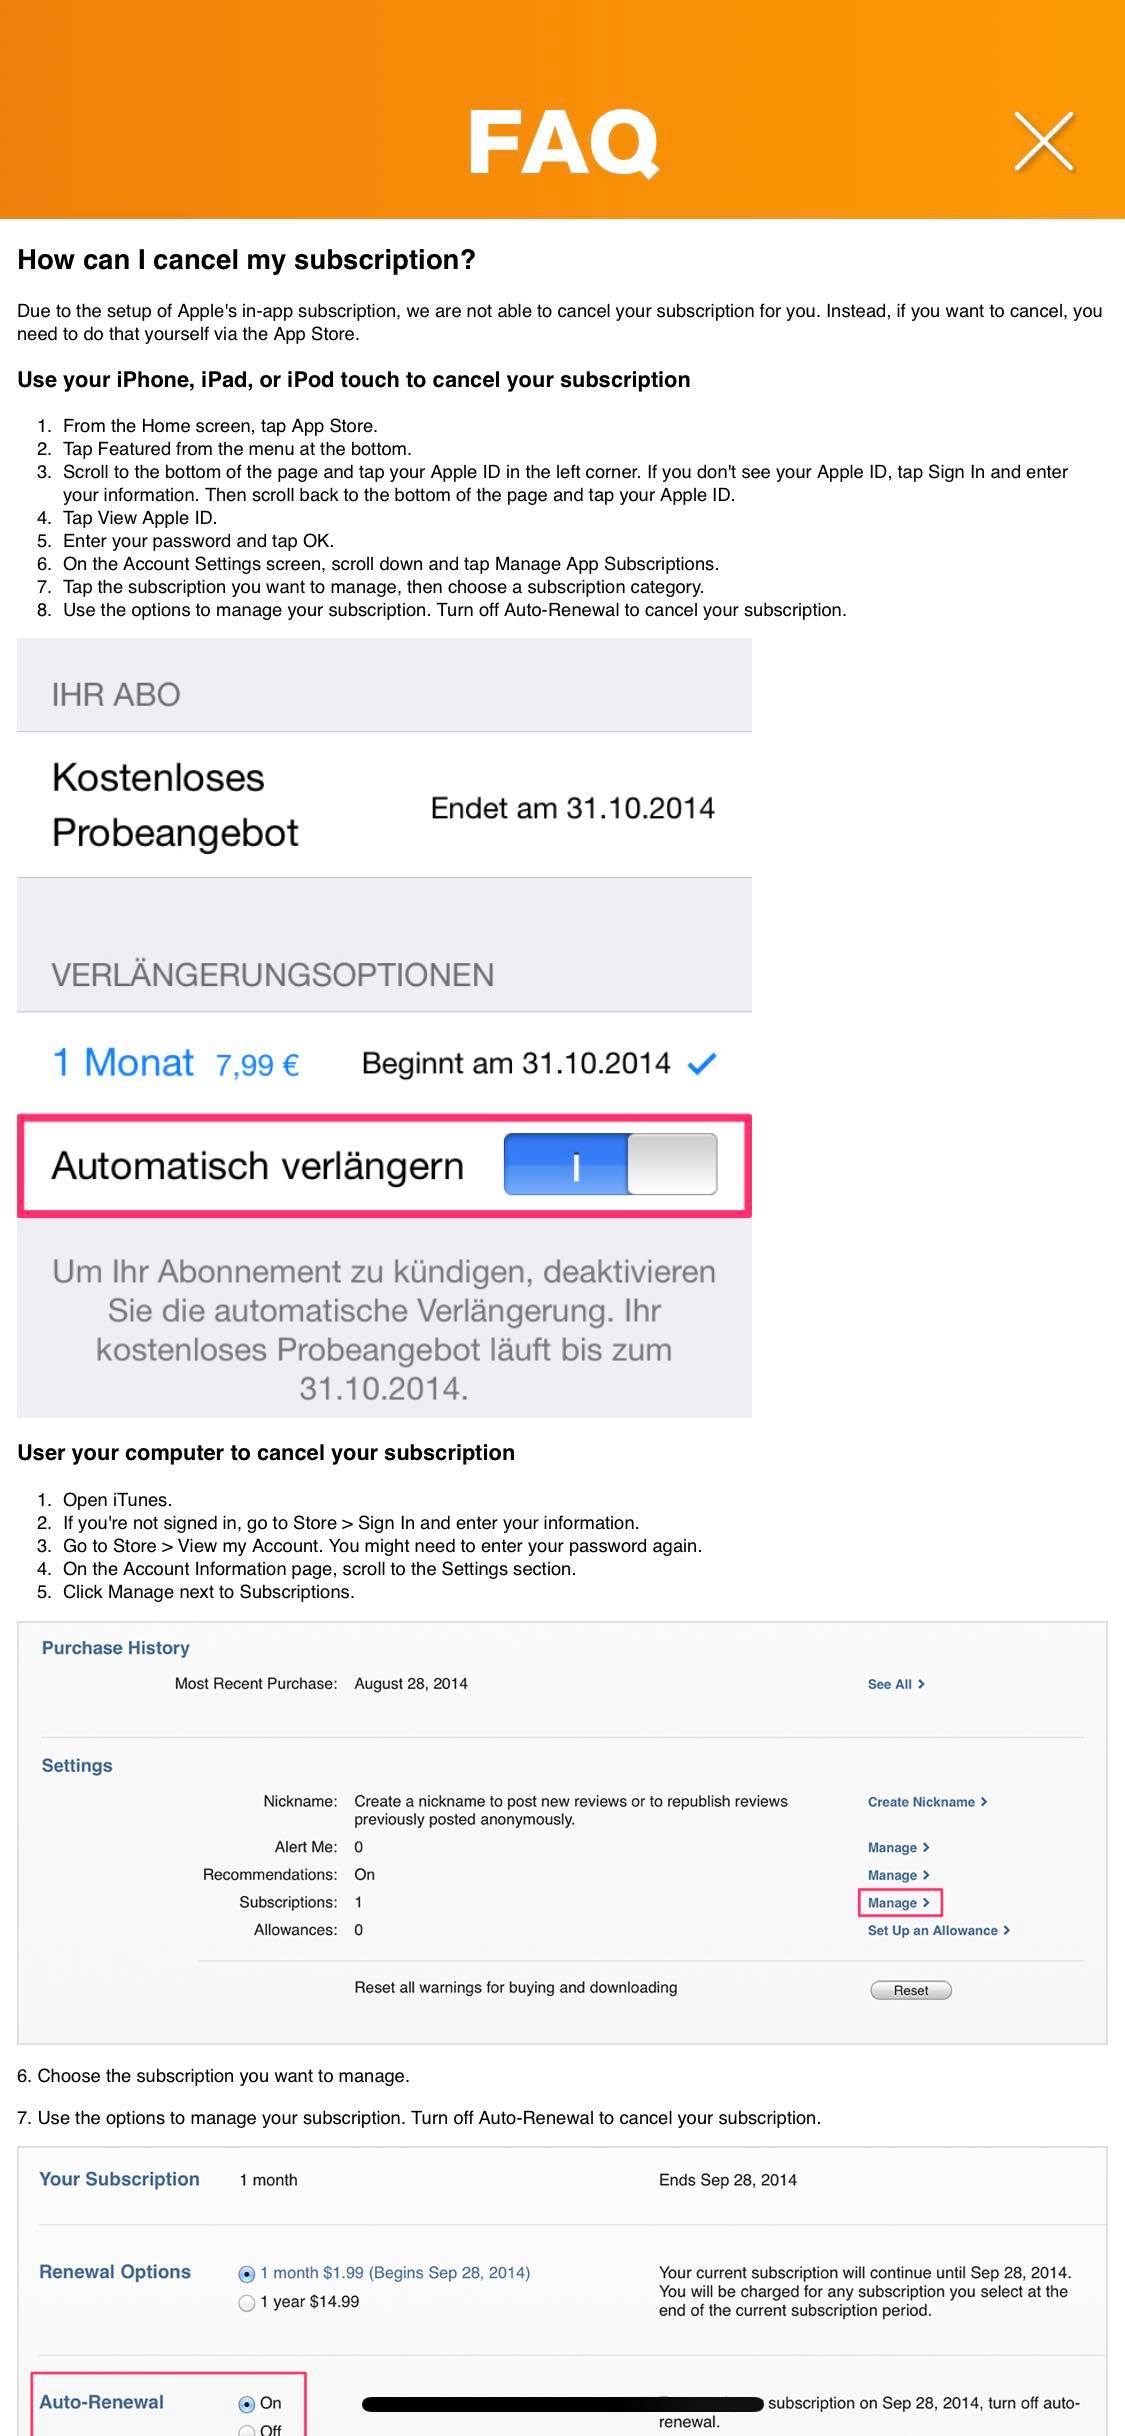 FAQ on iOS by Geist from UIGarage